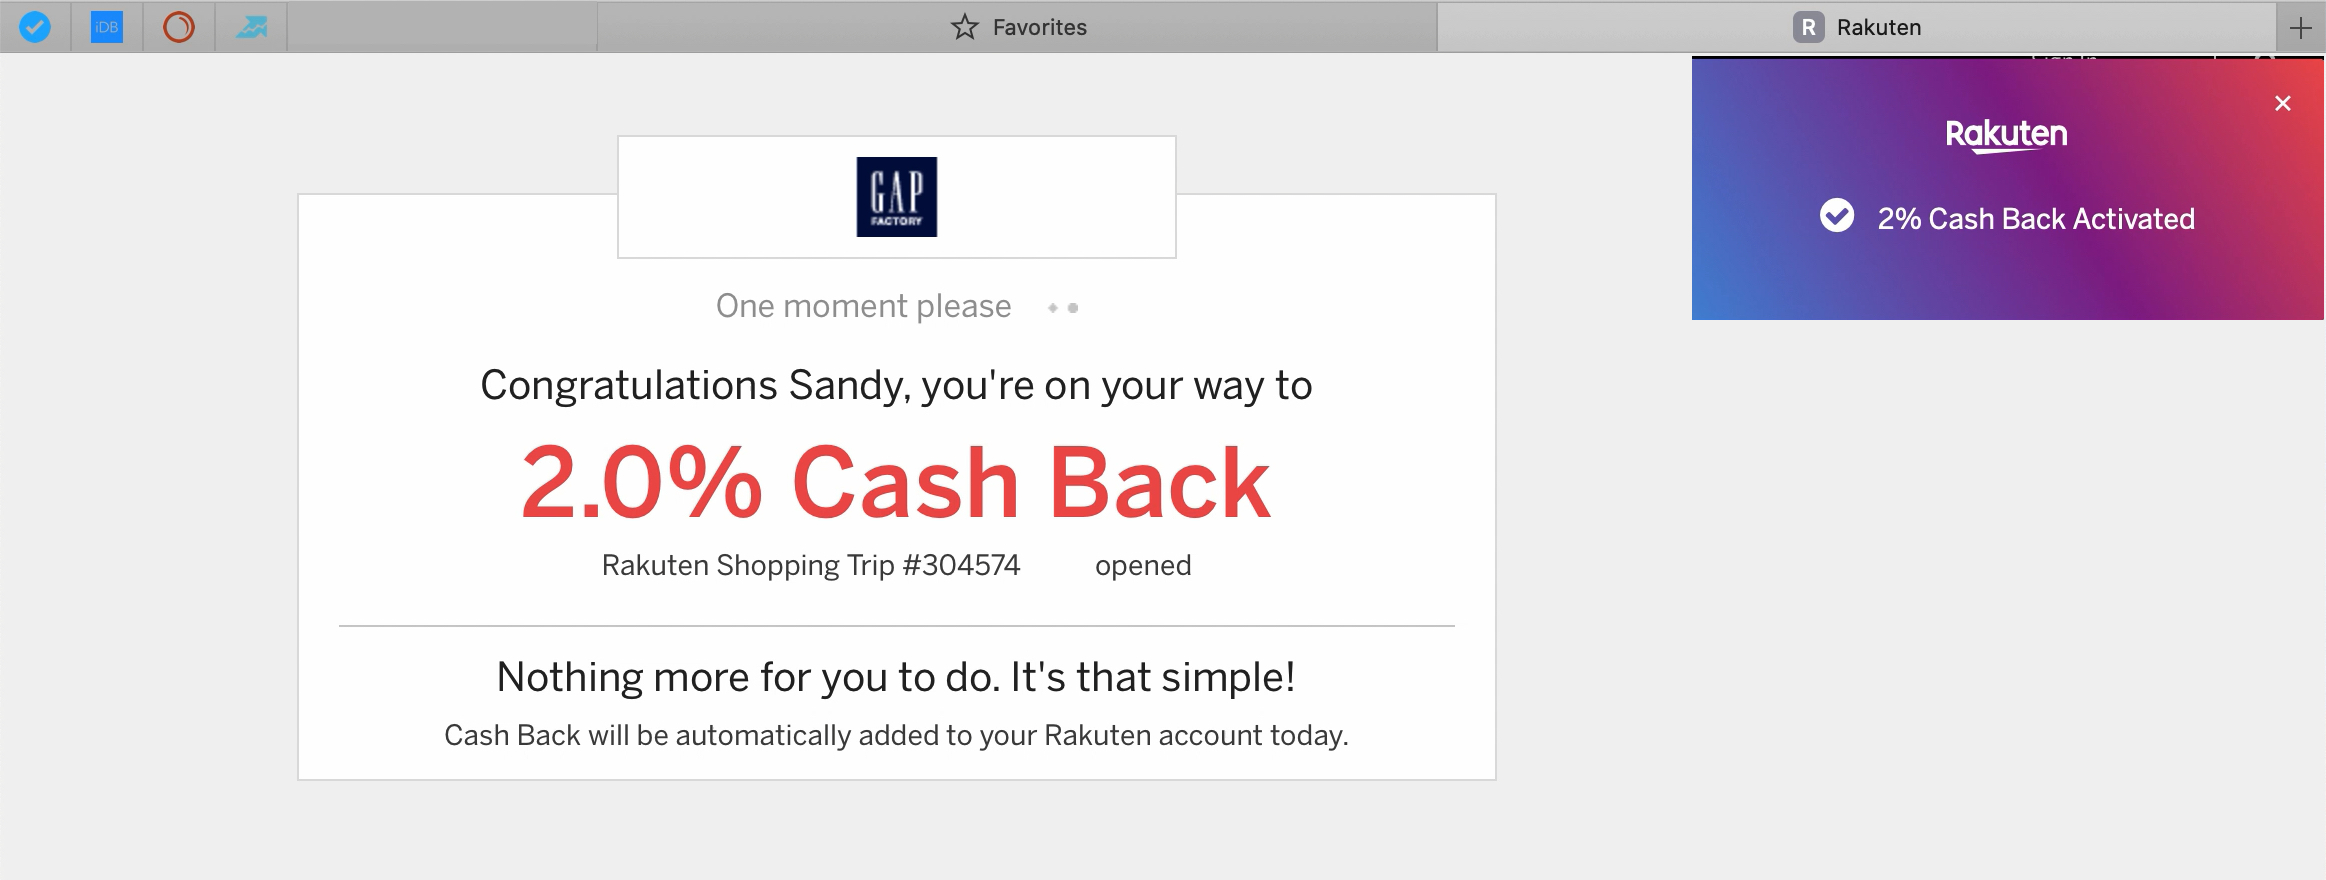 Rakuten Cash Back Safari Shop Discount